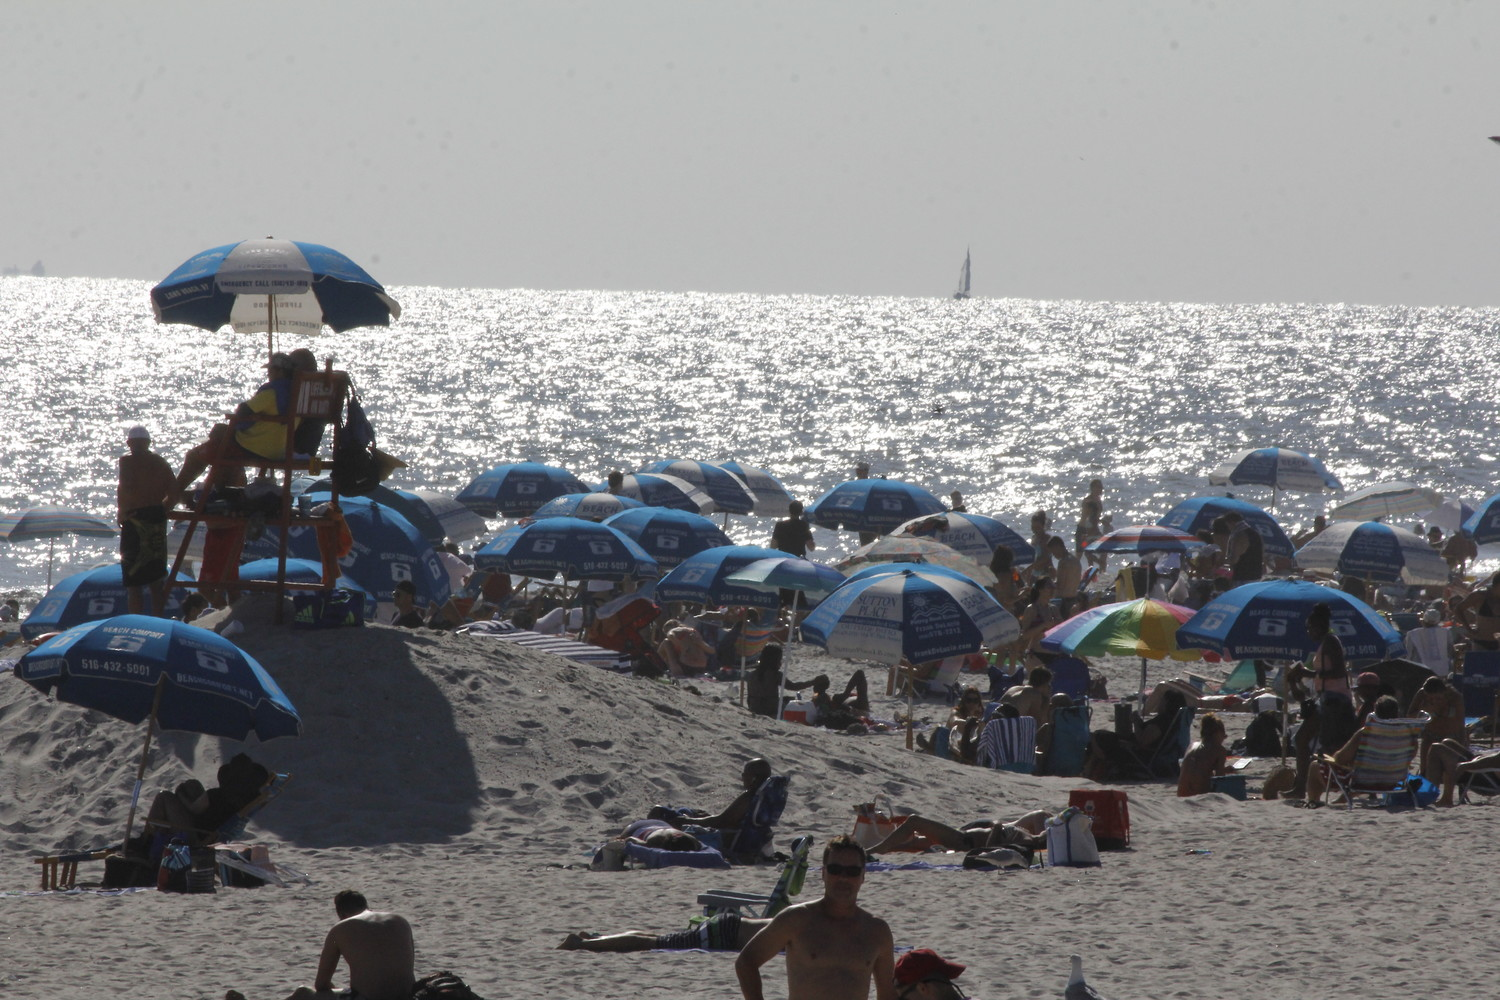 Lifeguards are monitoring the water after two swimmers sustained bites, possibly from sharks, on Fire Island.